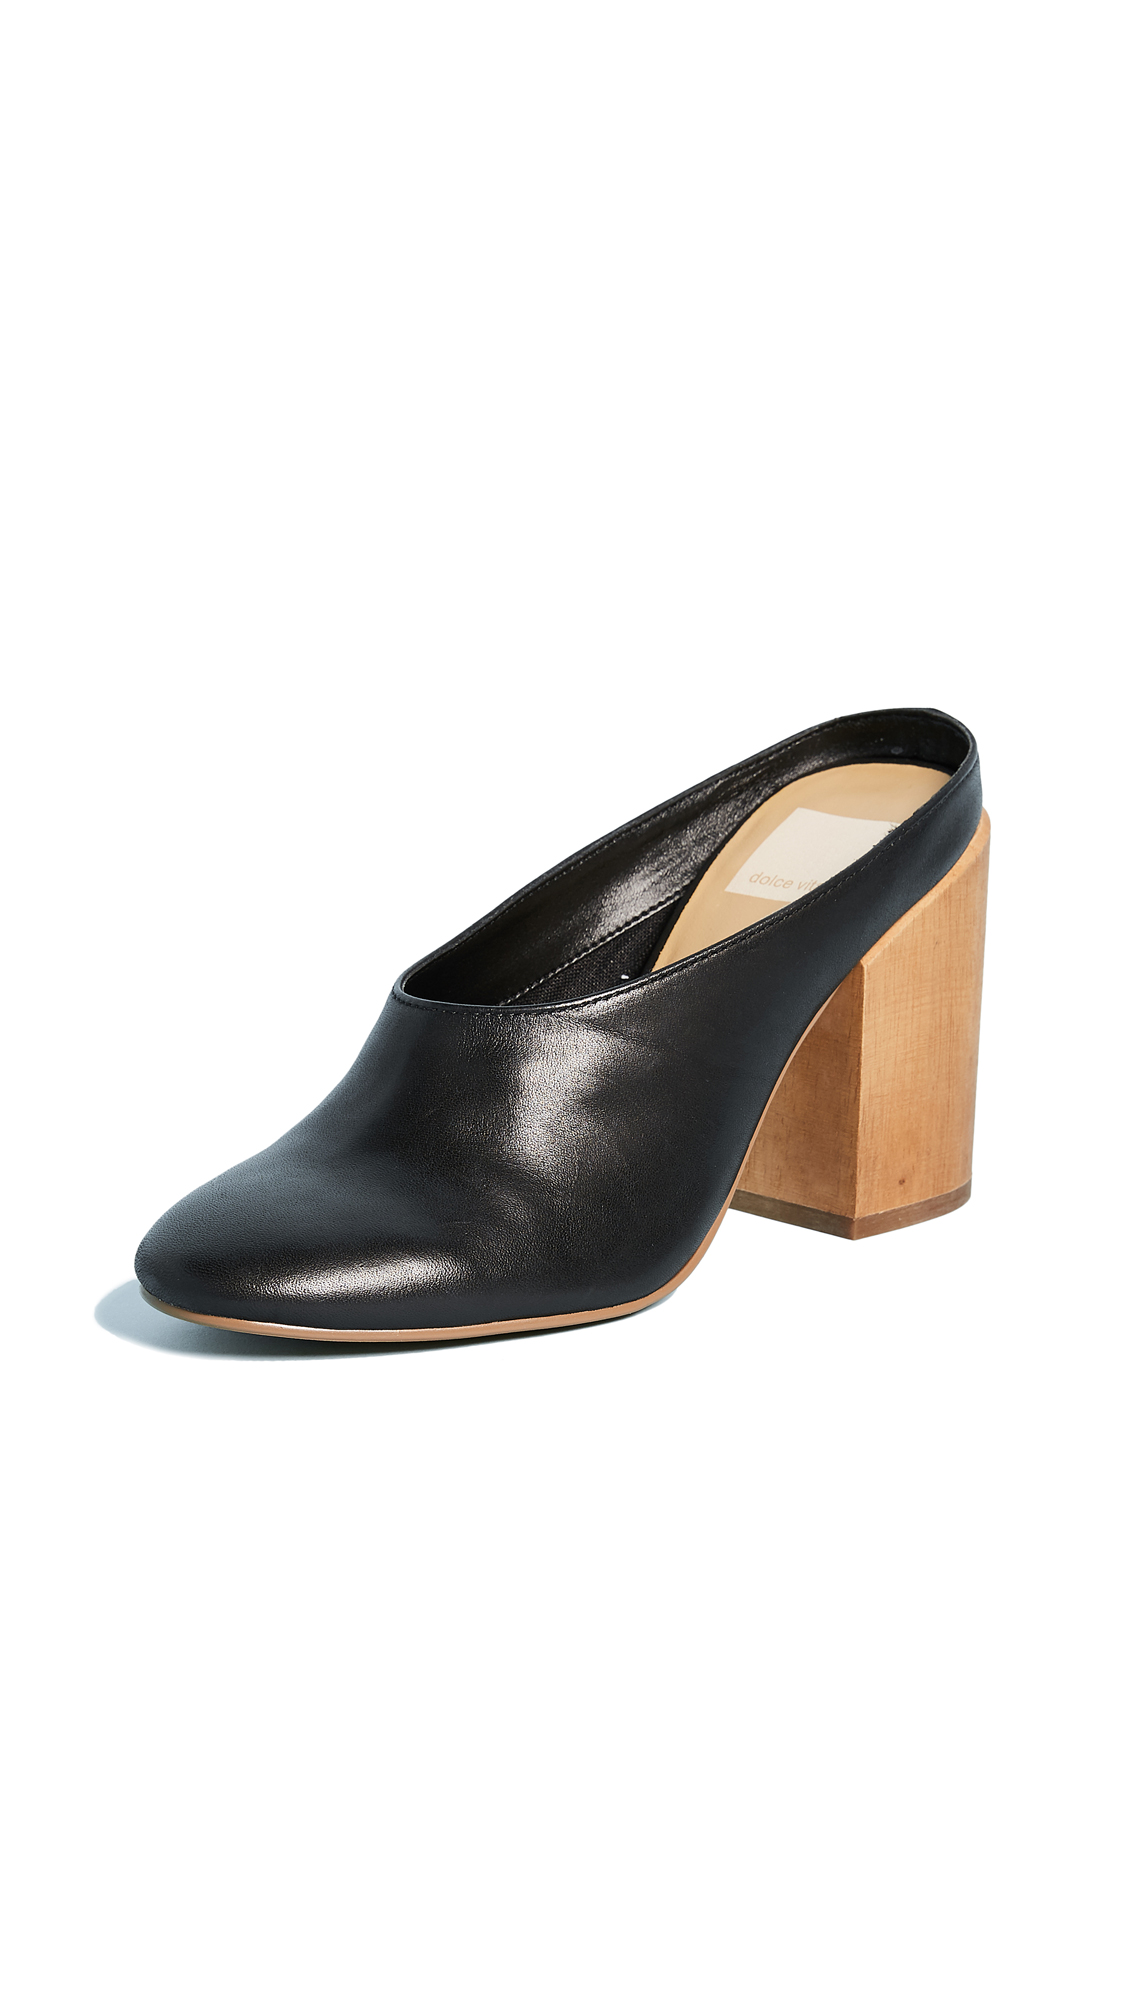 Dolce Vita Caley Mules - Black